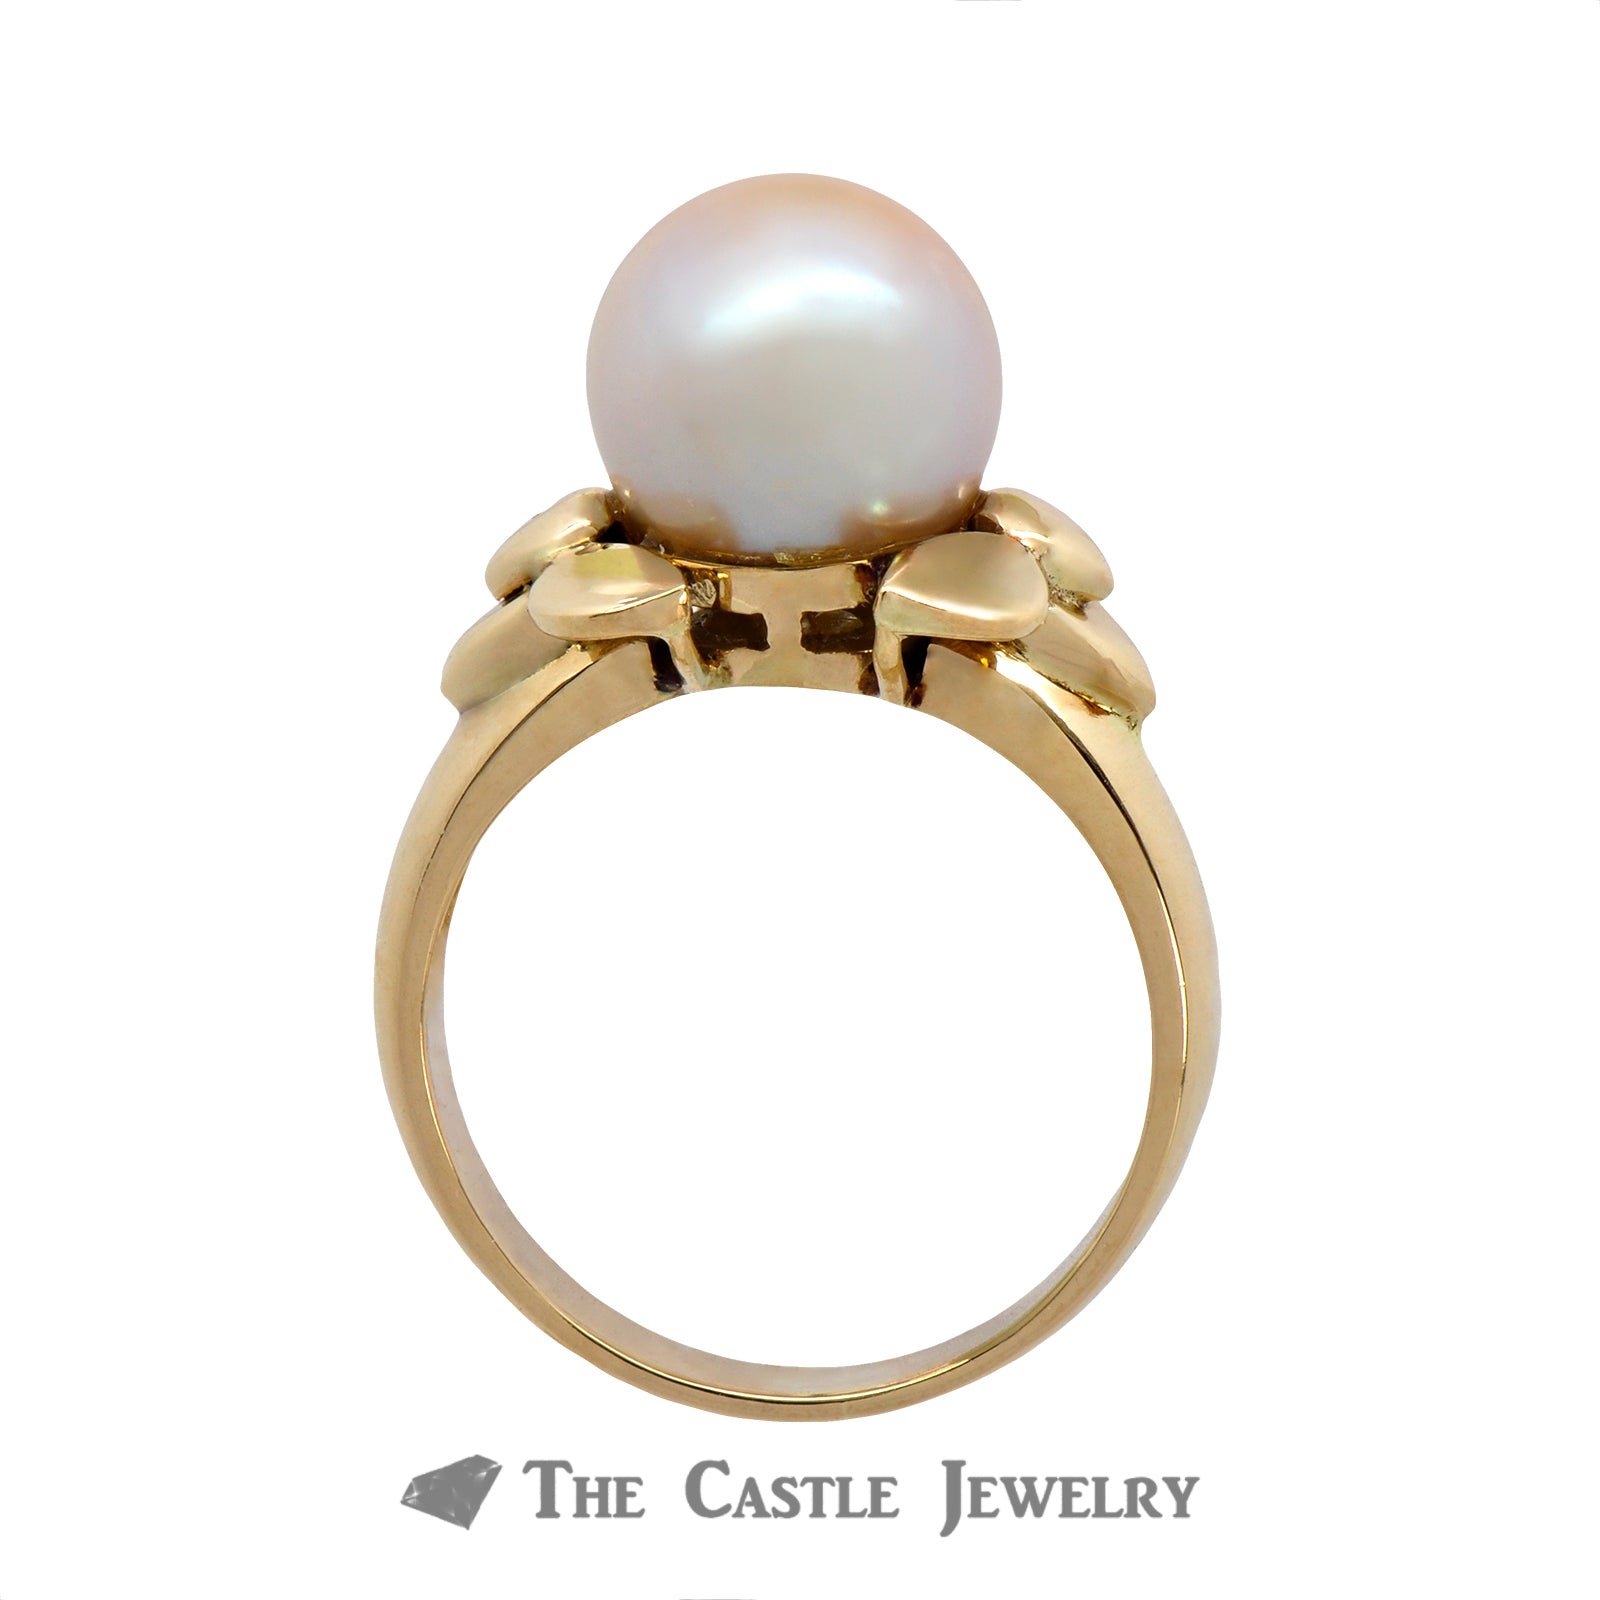 Pearl Ring with Fancy Bow Design Sides in 14K Yellow Gold-1